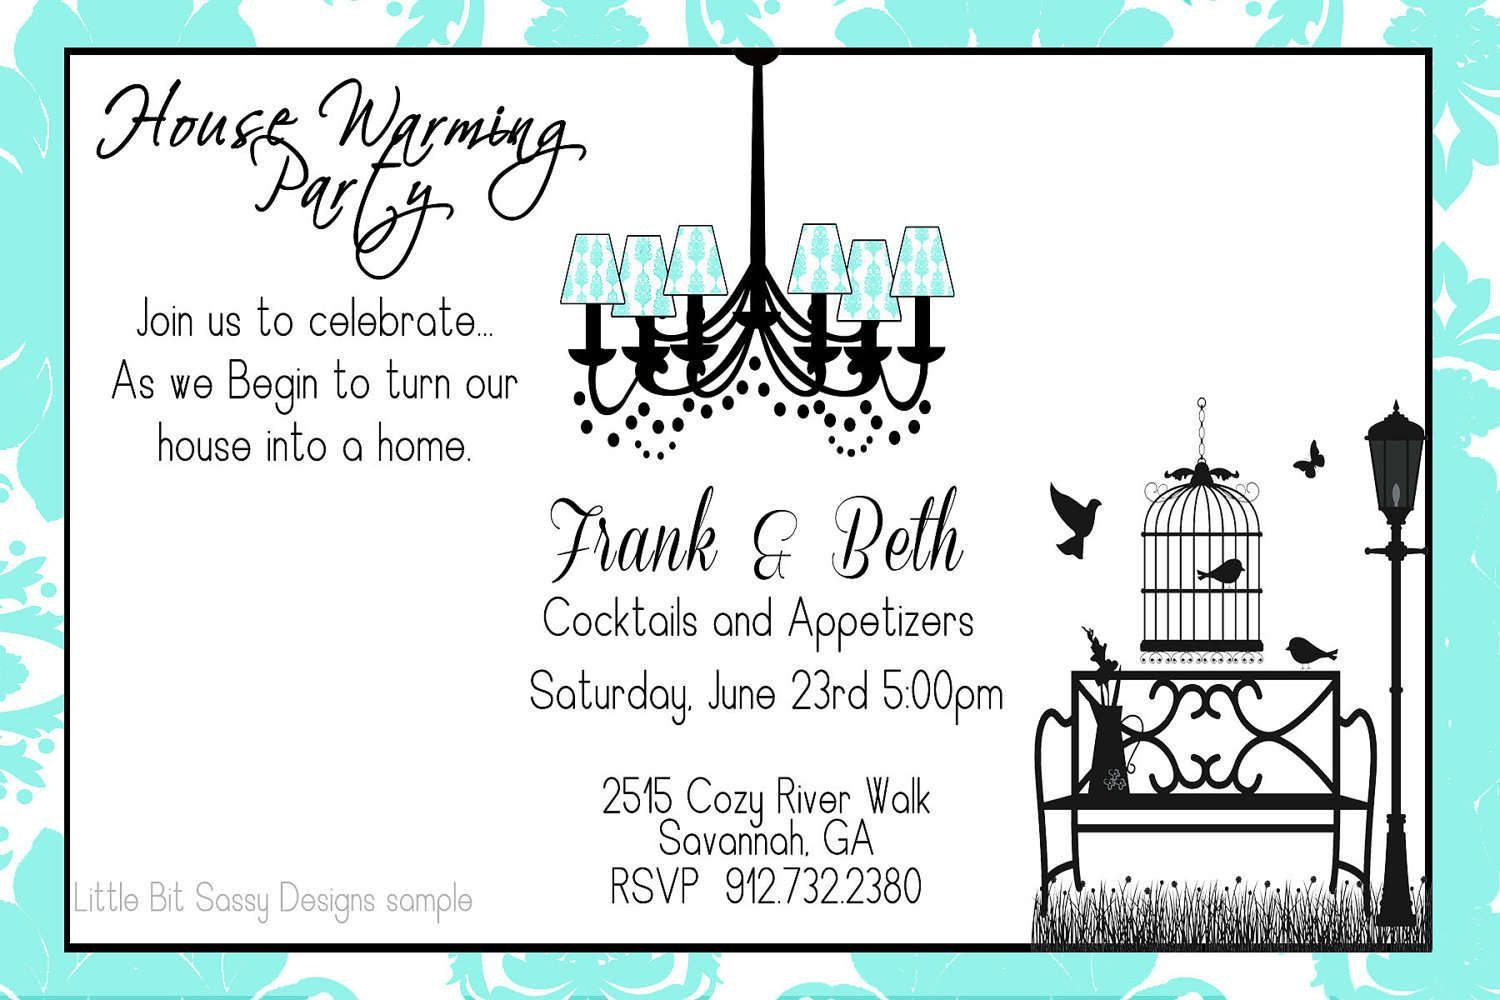 000 Incredible Free Housewarming Invitation Template High Definition  Templates Printable India Video DownloadFull